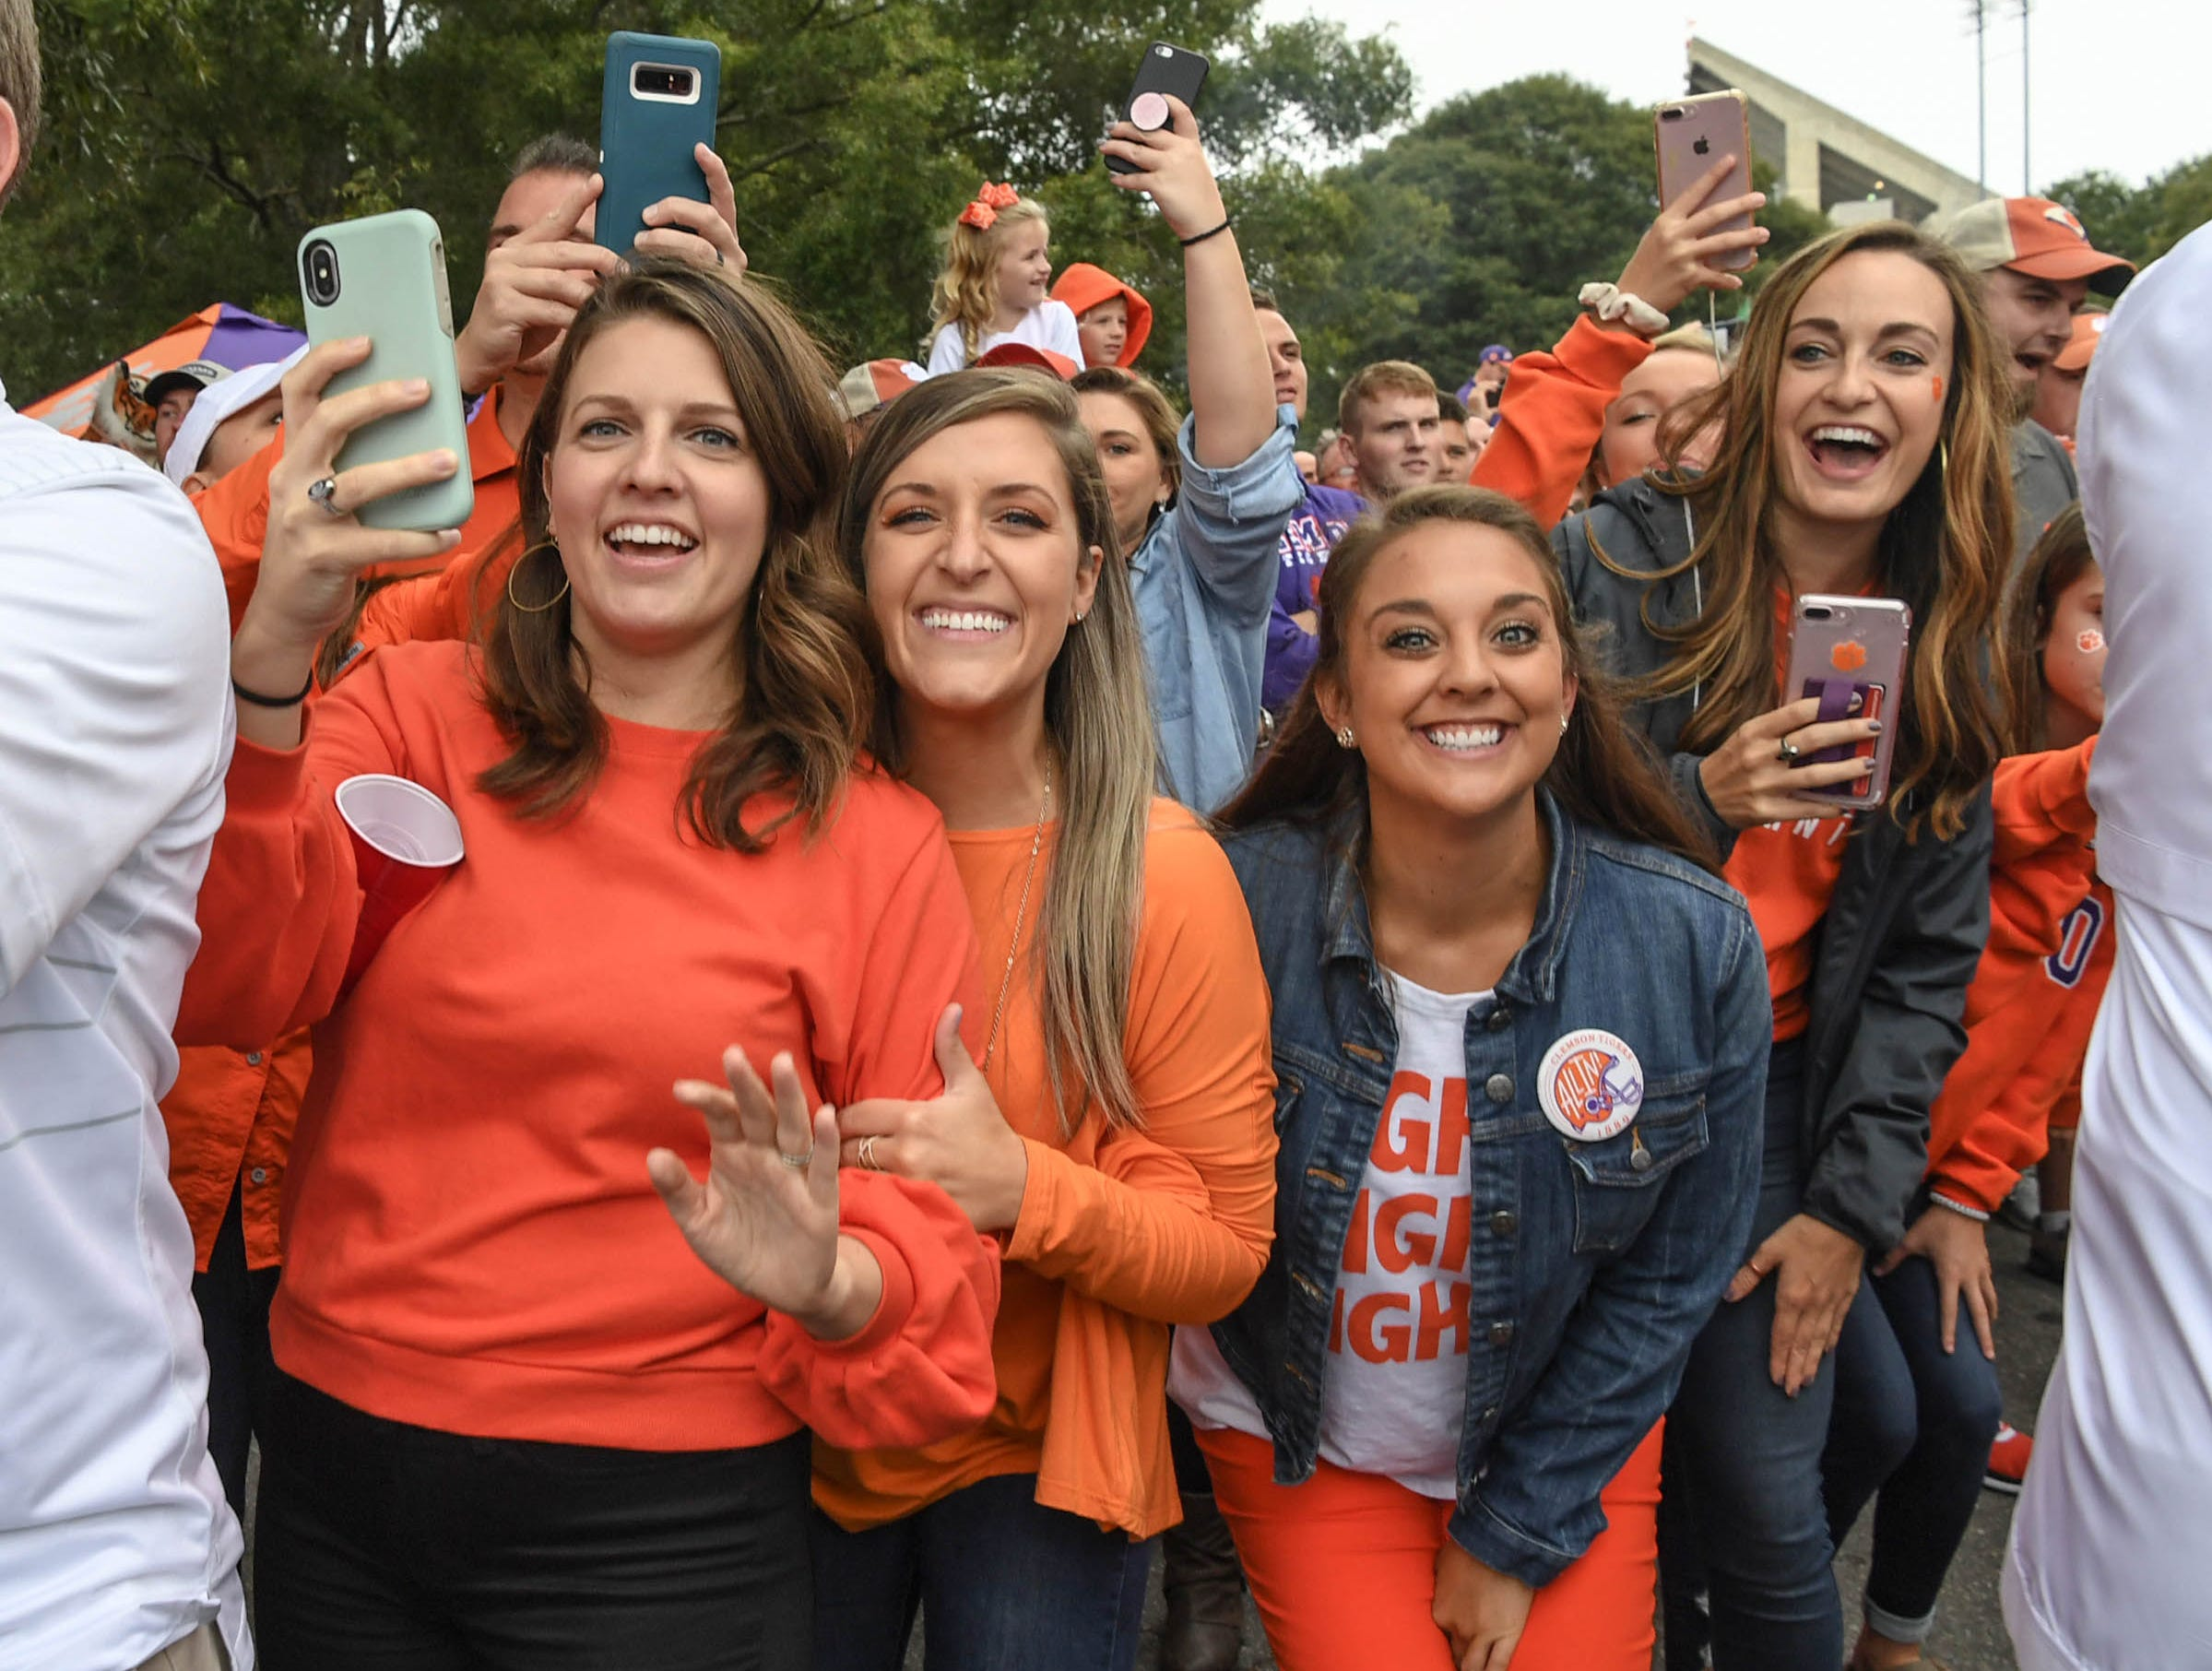 Clemson fans smile during Tiger Walk before the game in Memorial Stadium on Saturday, October 20, 2018.